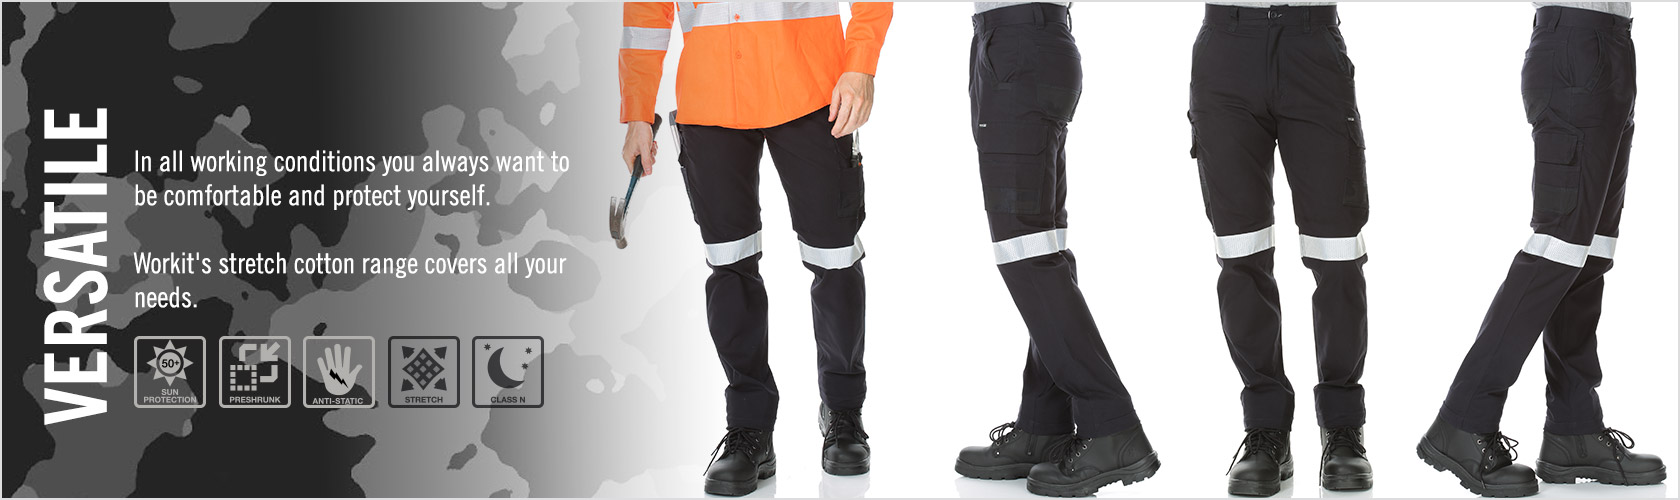 WORKIT® Stretch Canvas Cargo Pants with Breathable Reflective Tape